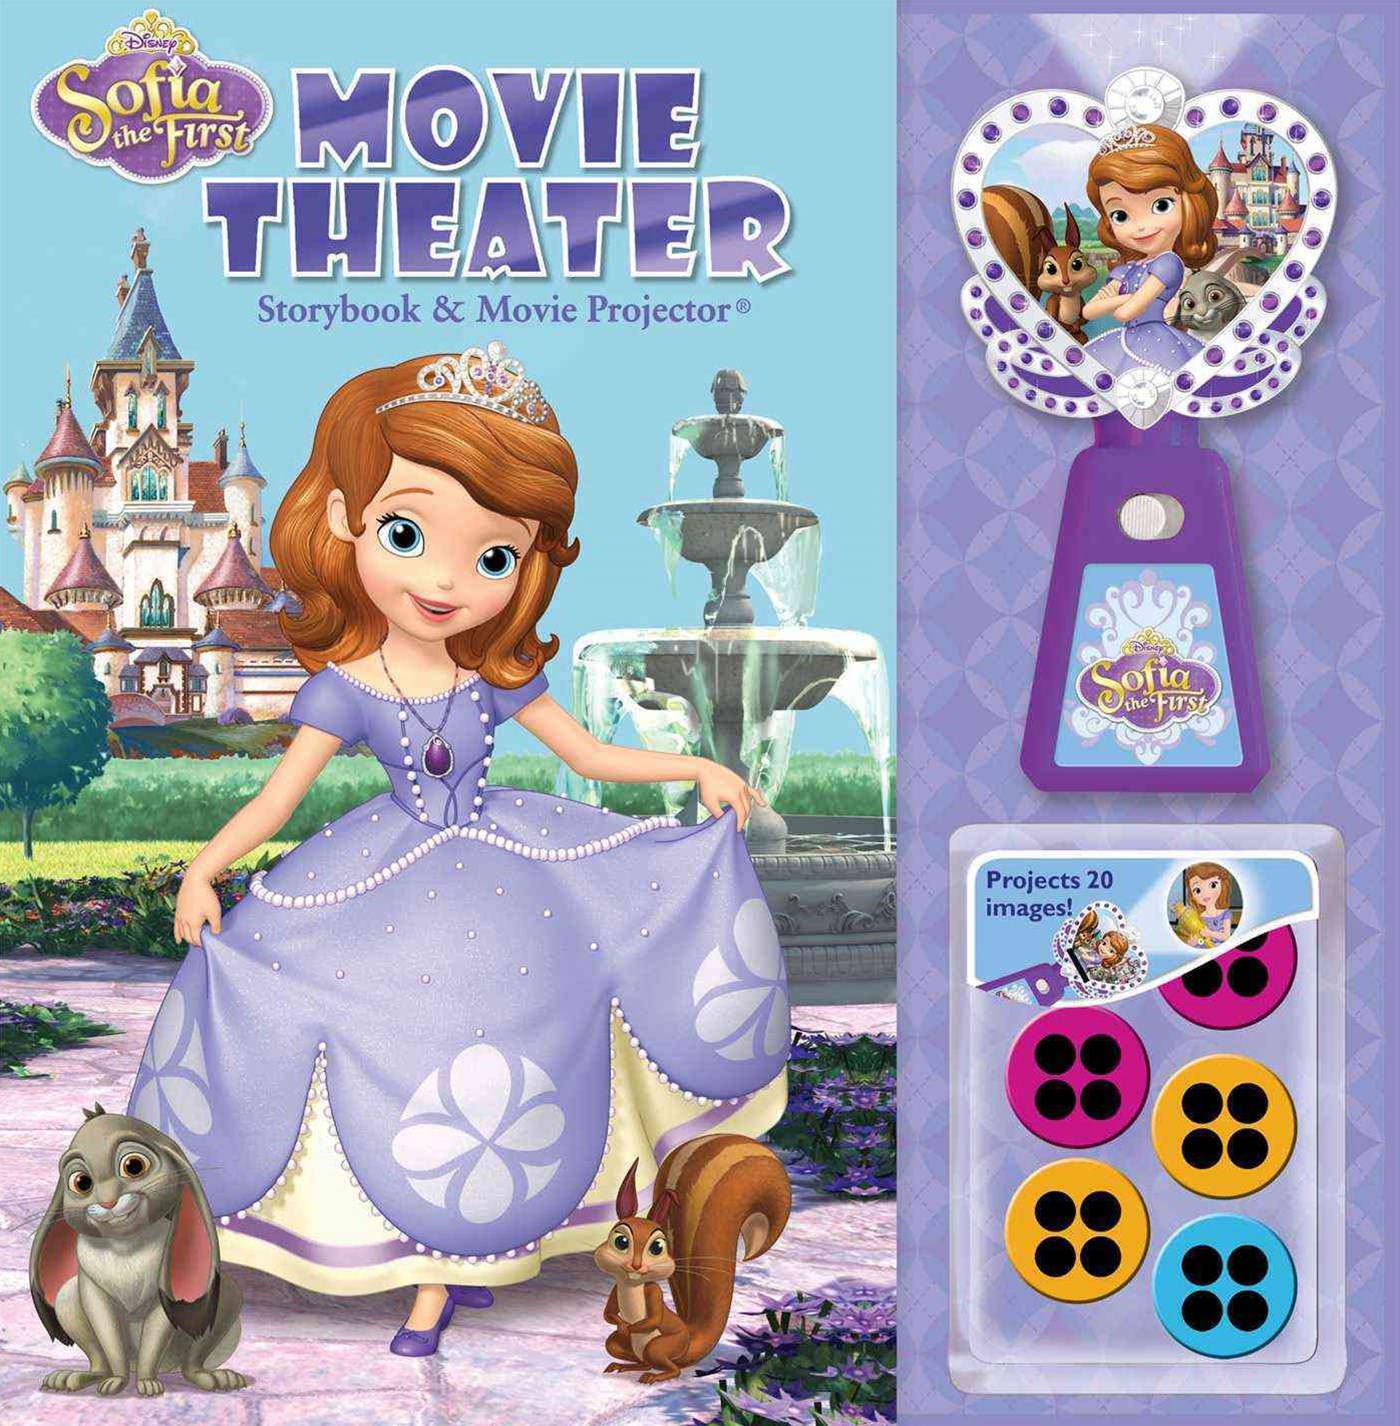 Disney Sofia the First Movie Theater Storybook and Movie Projector